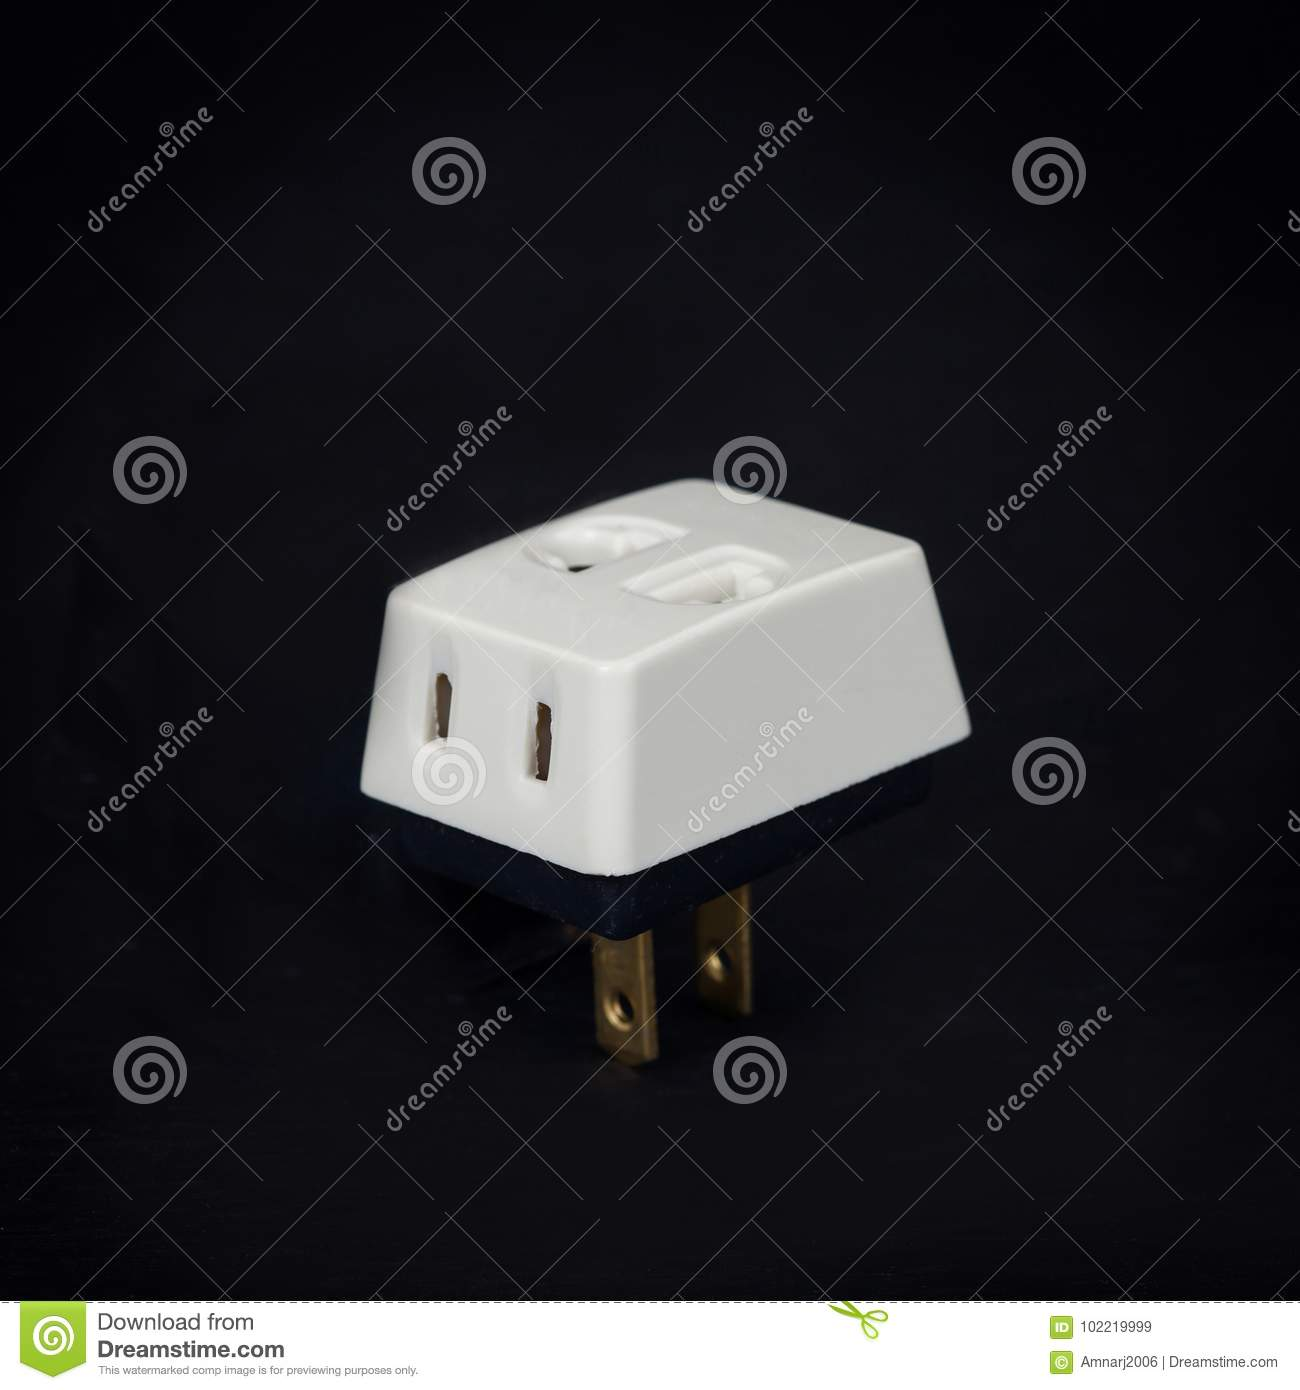 Three Way Plug For Home Electric Stock Image - Image of object ...